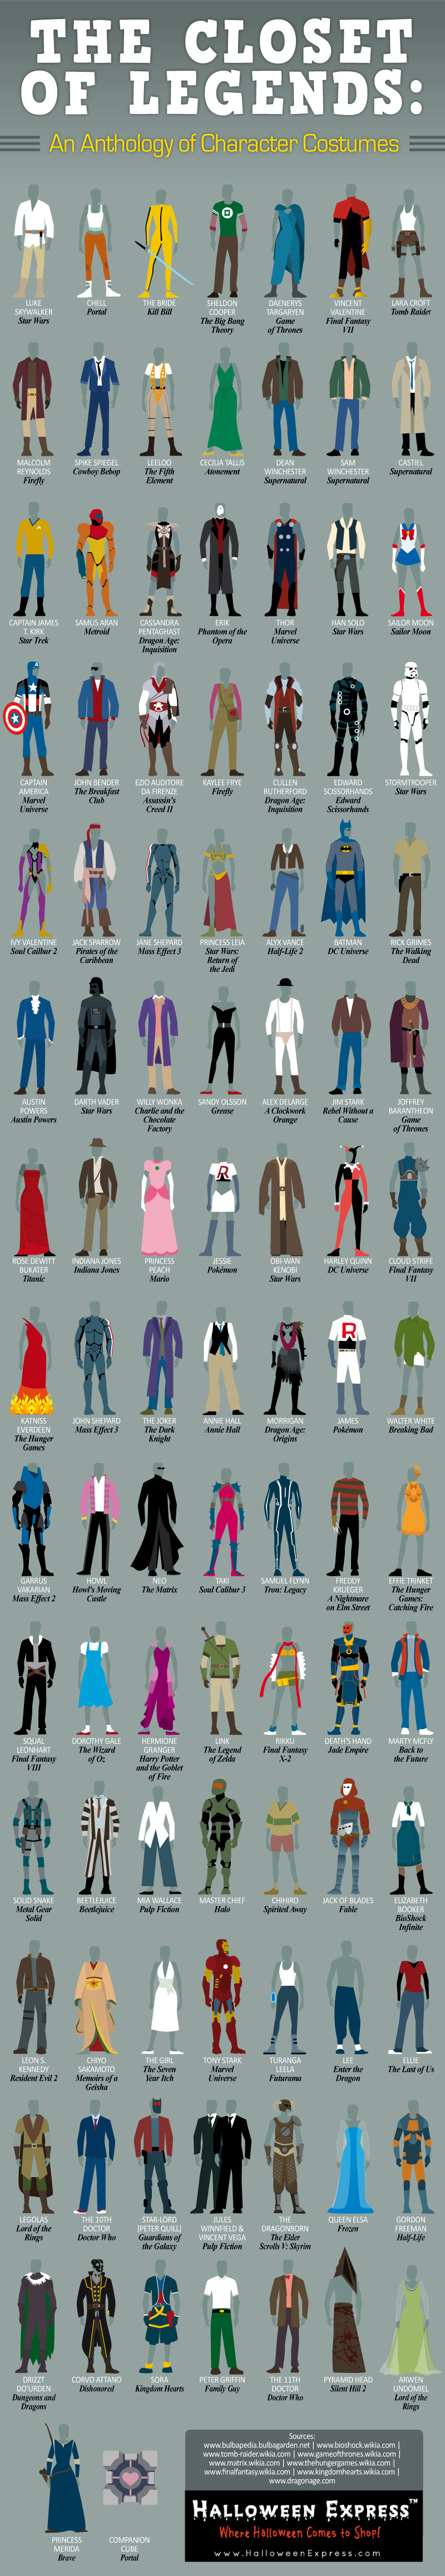 The Closet of Legends: An Anthology of Character Costumes  - HalloweenExpress.com - Infographic